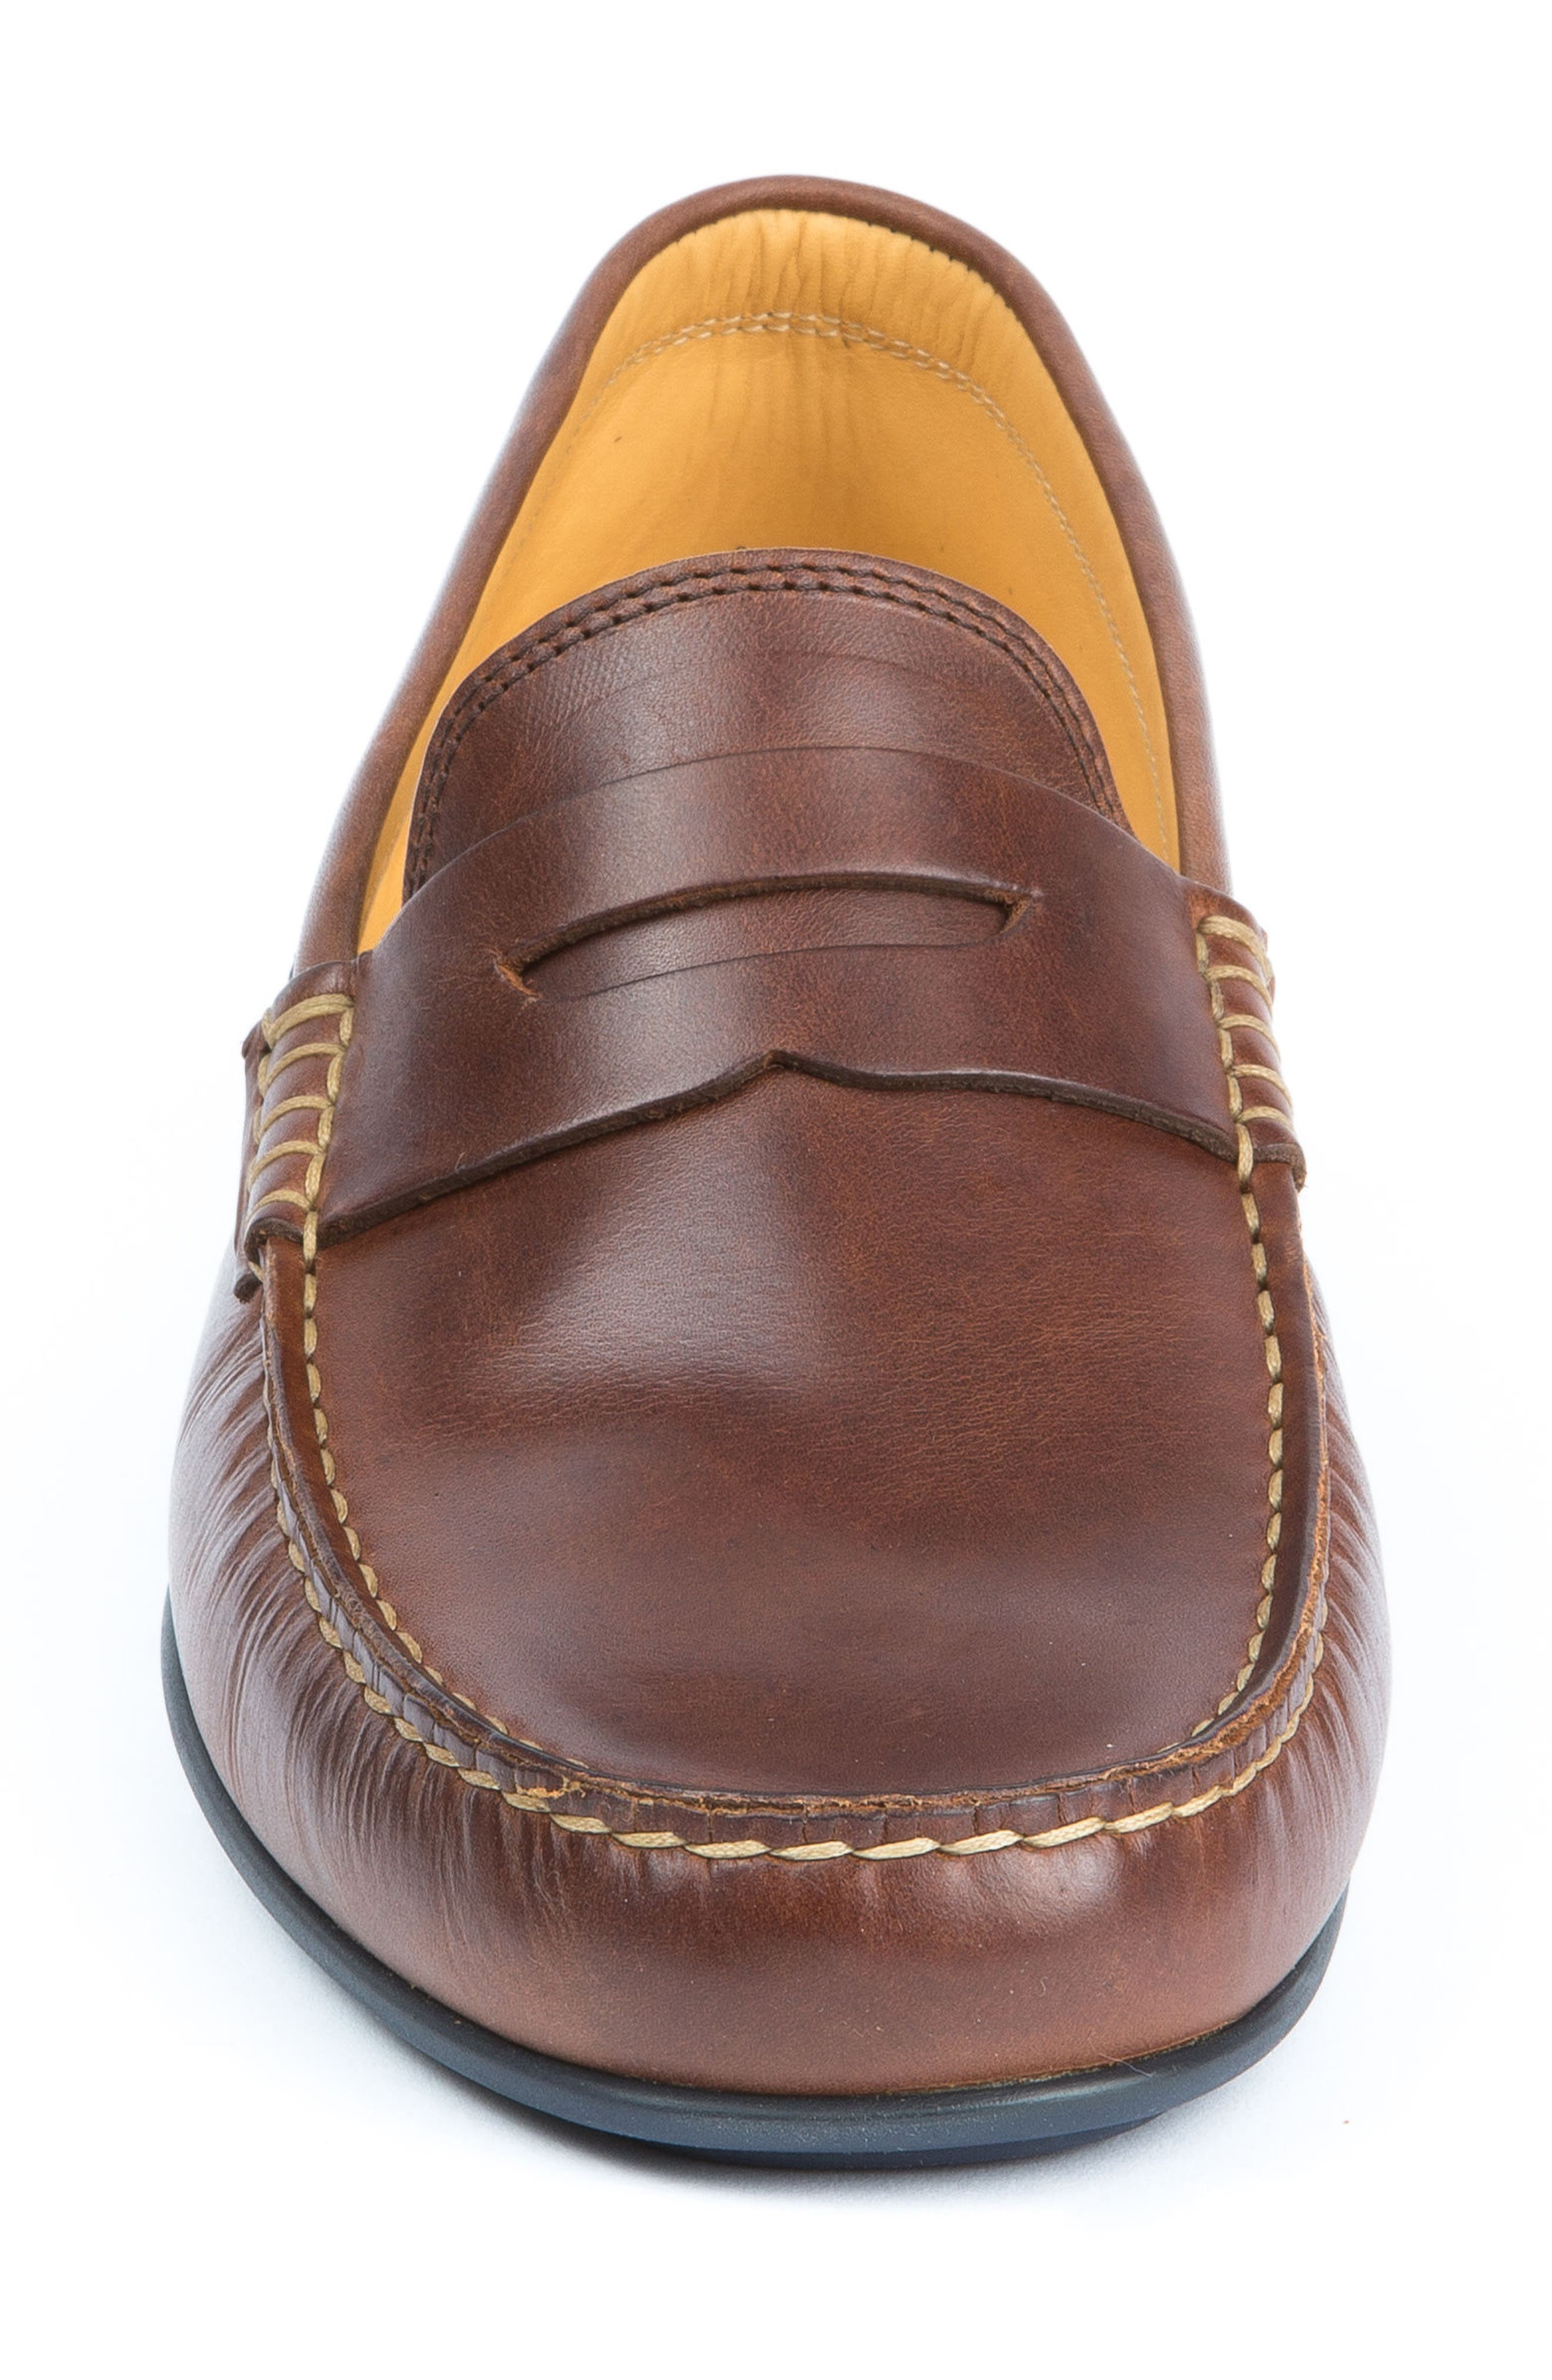 'Clinton' Leather Penny Loafer,                             Alternate thumbnail 5, color,                             LIGHT BROWN